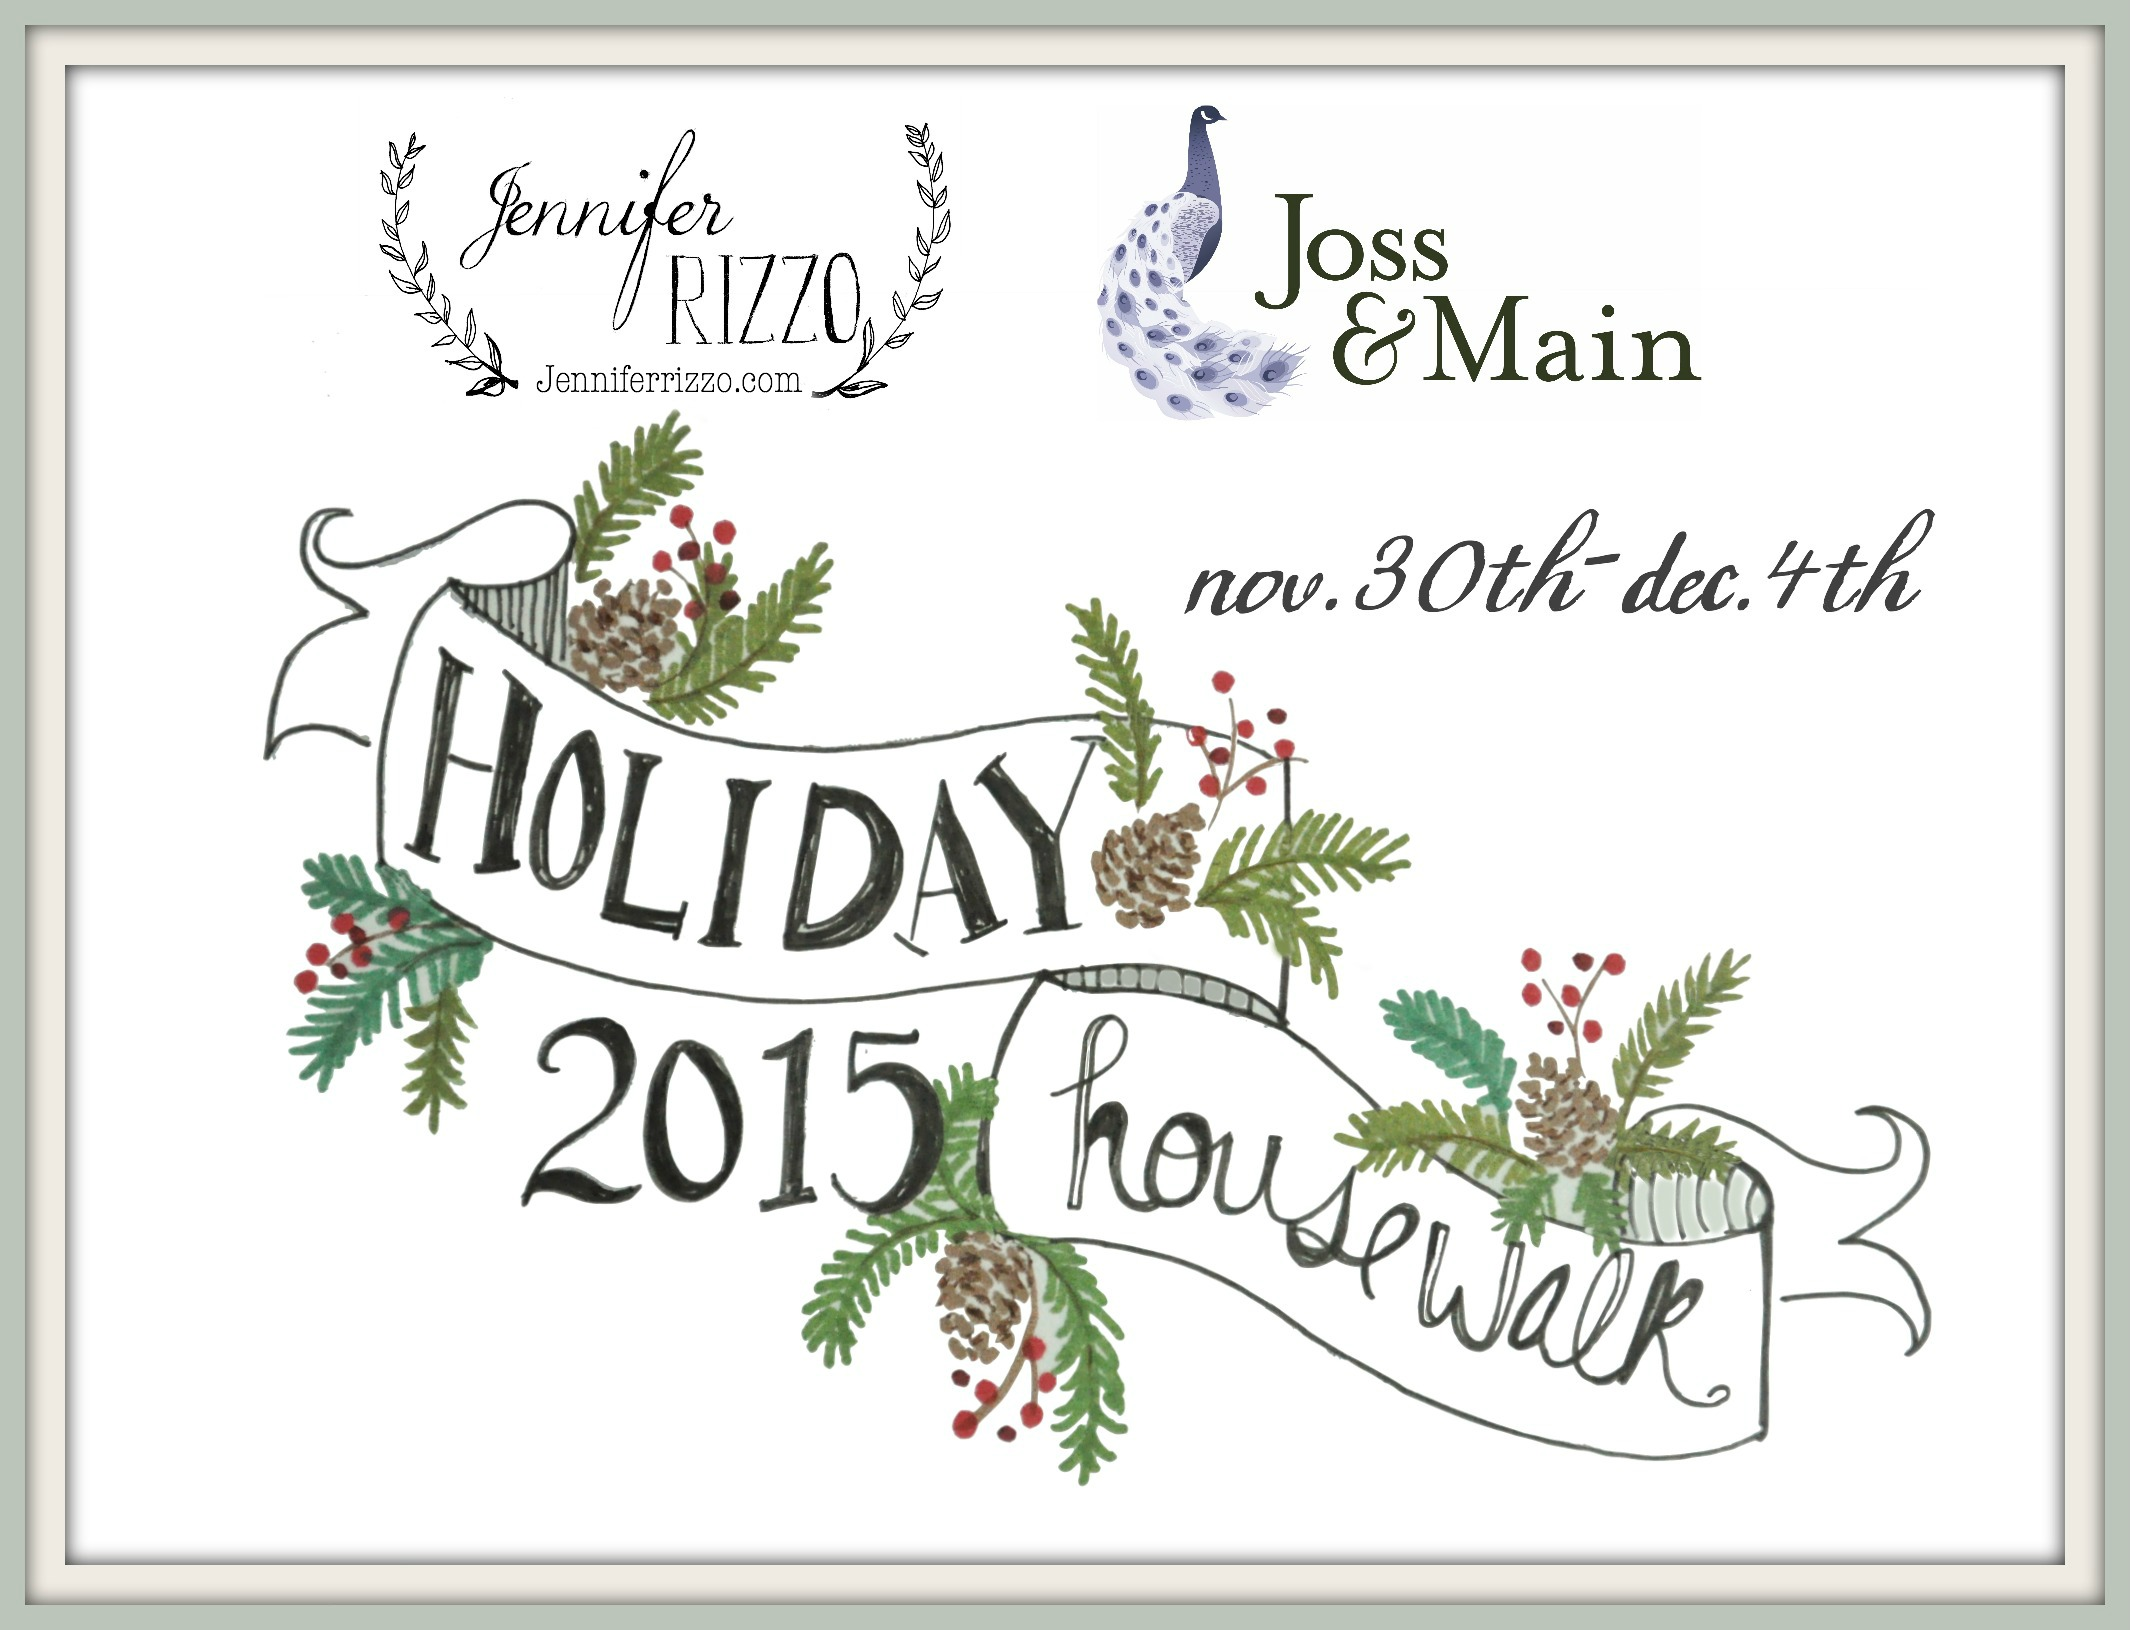 holiday housewalk Jennifer Rizzo JM 2015.jpg